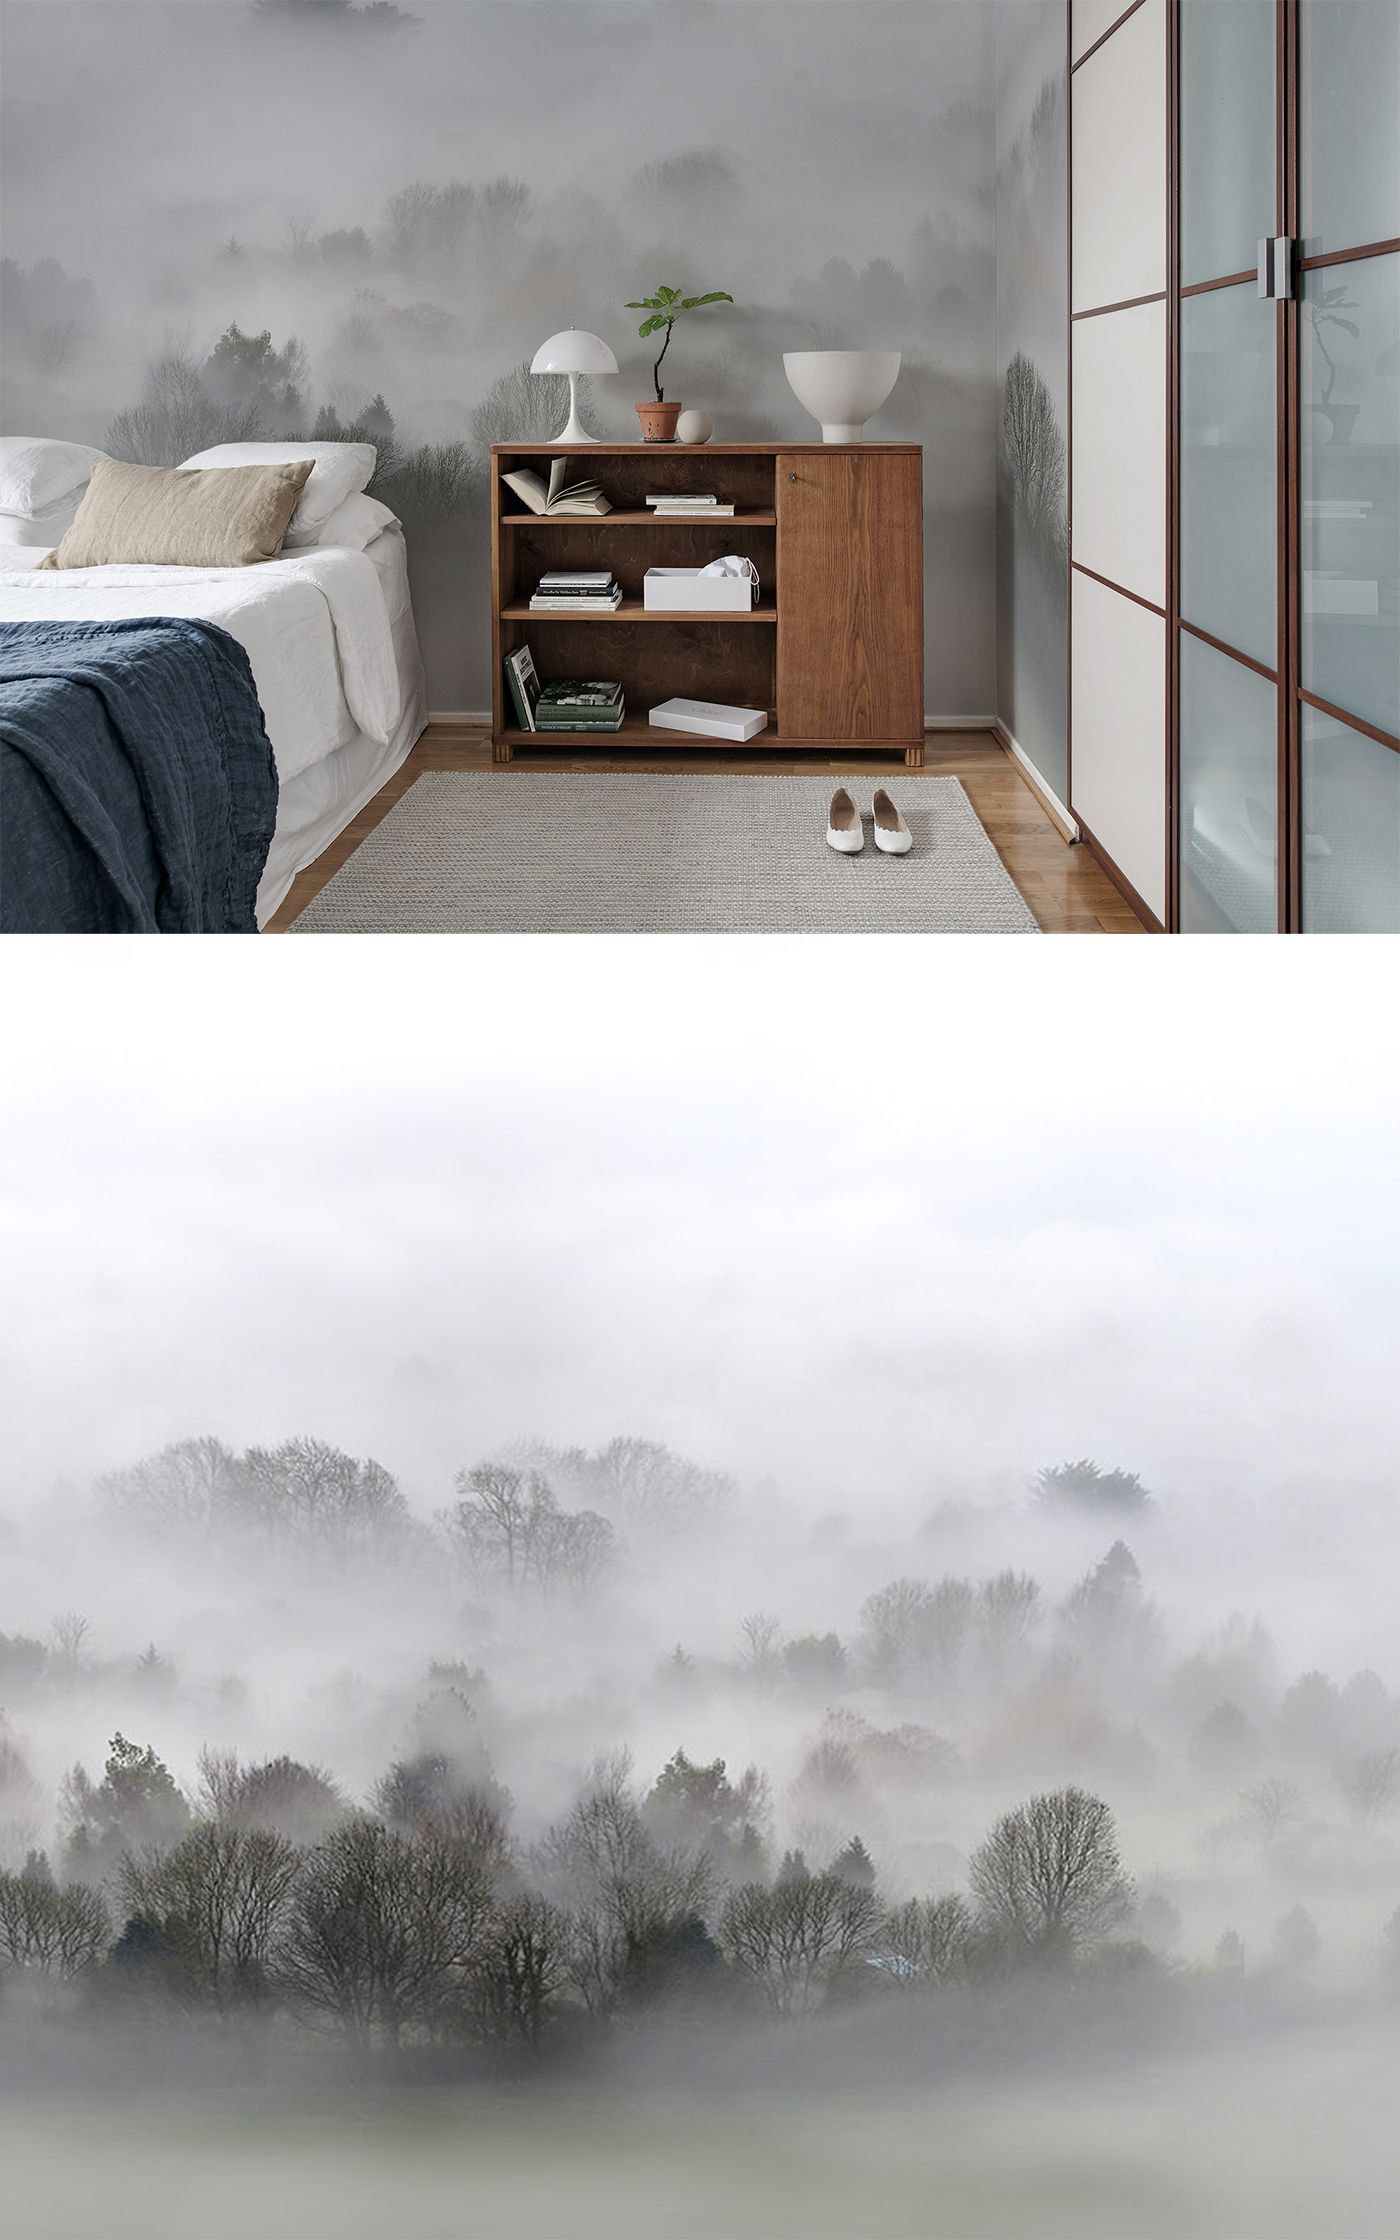 Morning Fog Selfmade Pinterest Wall Wallpaper Wallpaper Und